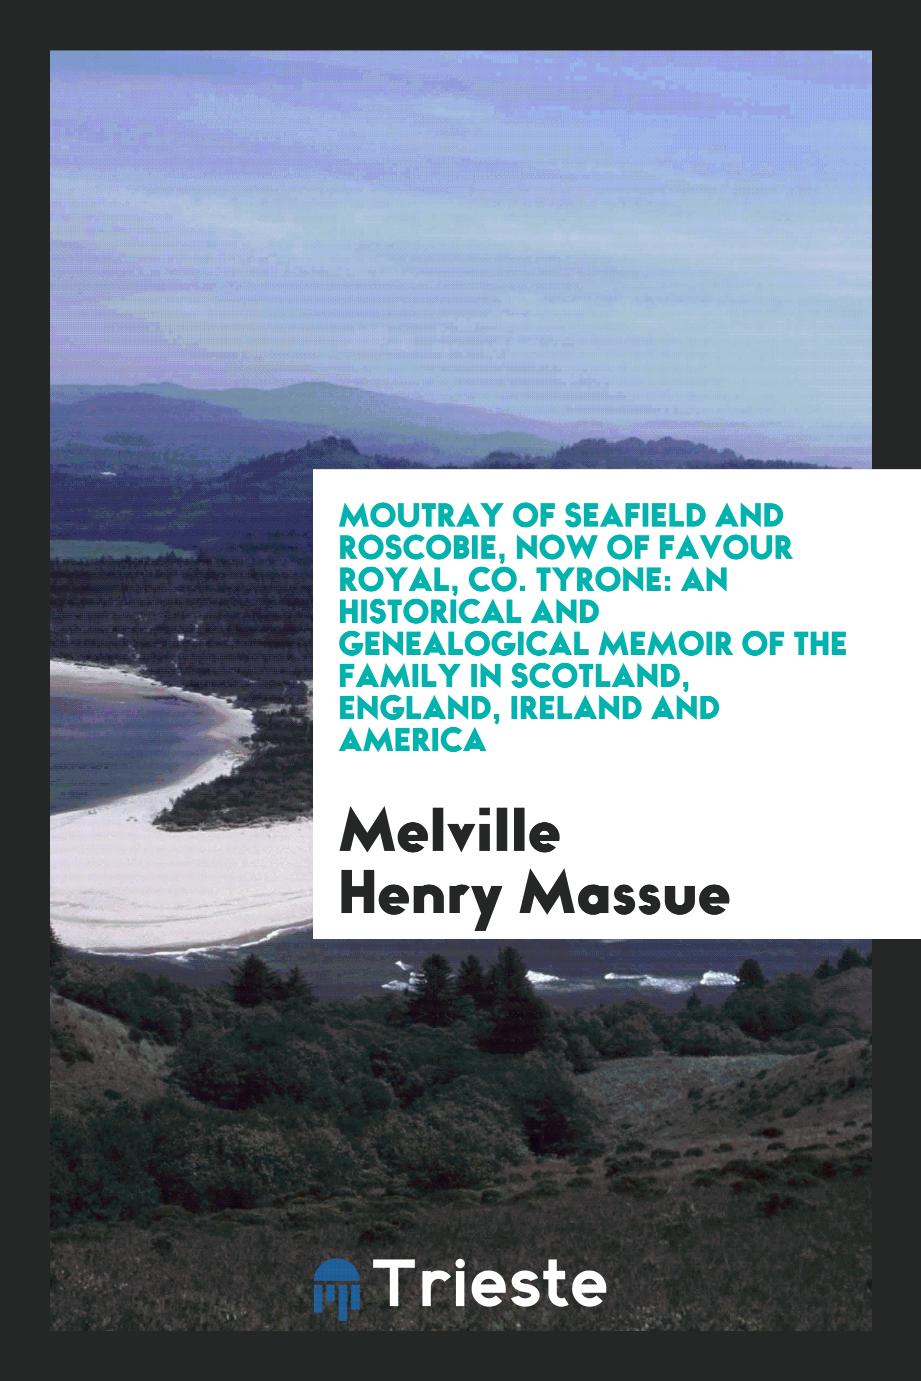 Moutray of Seafield and Roscobie, Now of Favour Royal, Co. Tyrone: An Historical and Genealogical Memoir of the Family in Scotland, England, Ireland and America